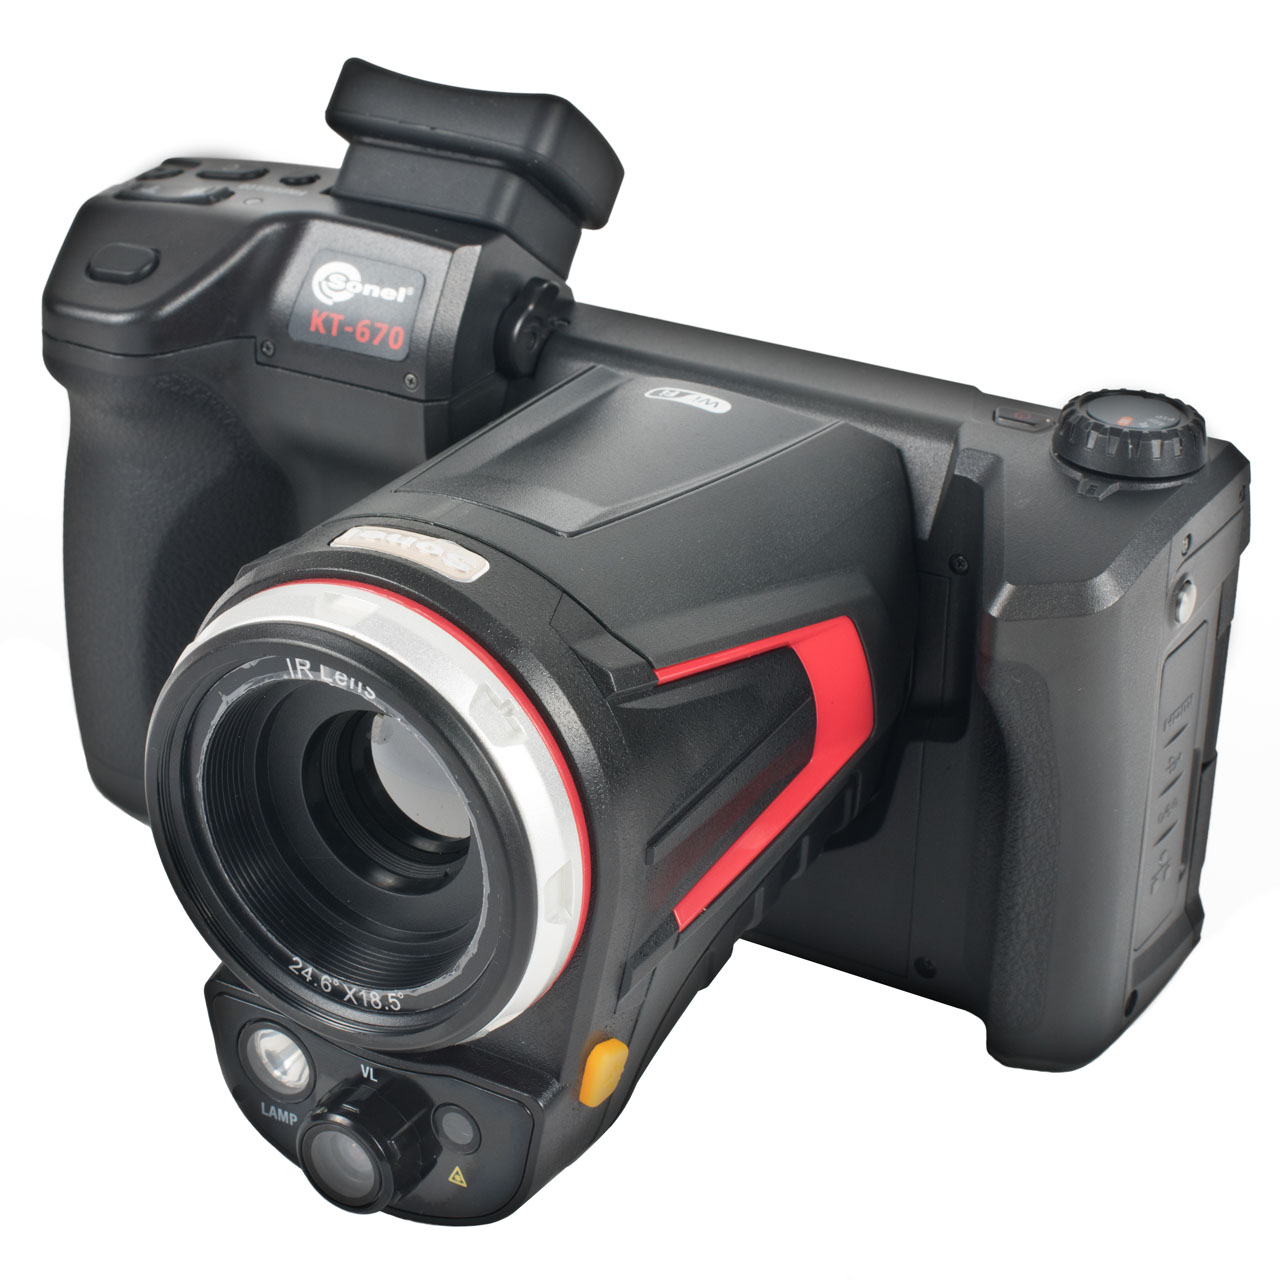 Thermal Imager product profile image